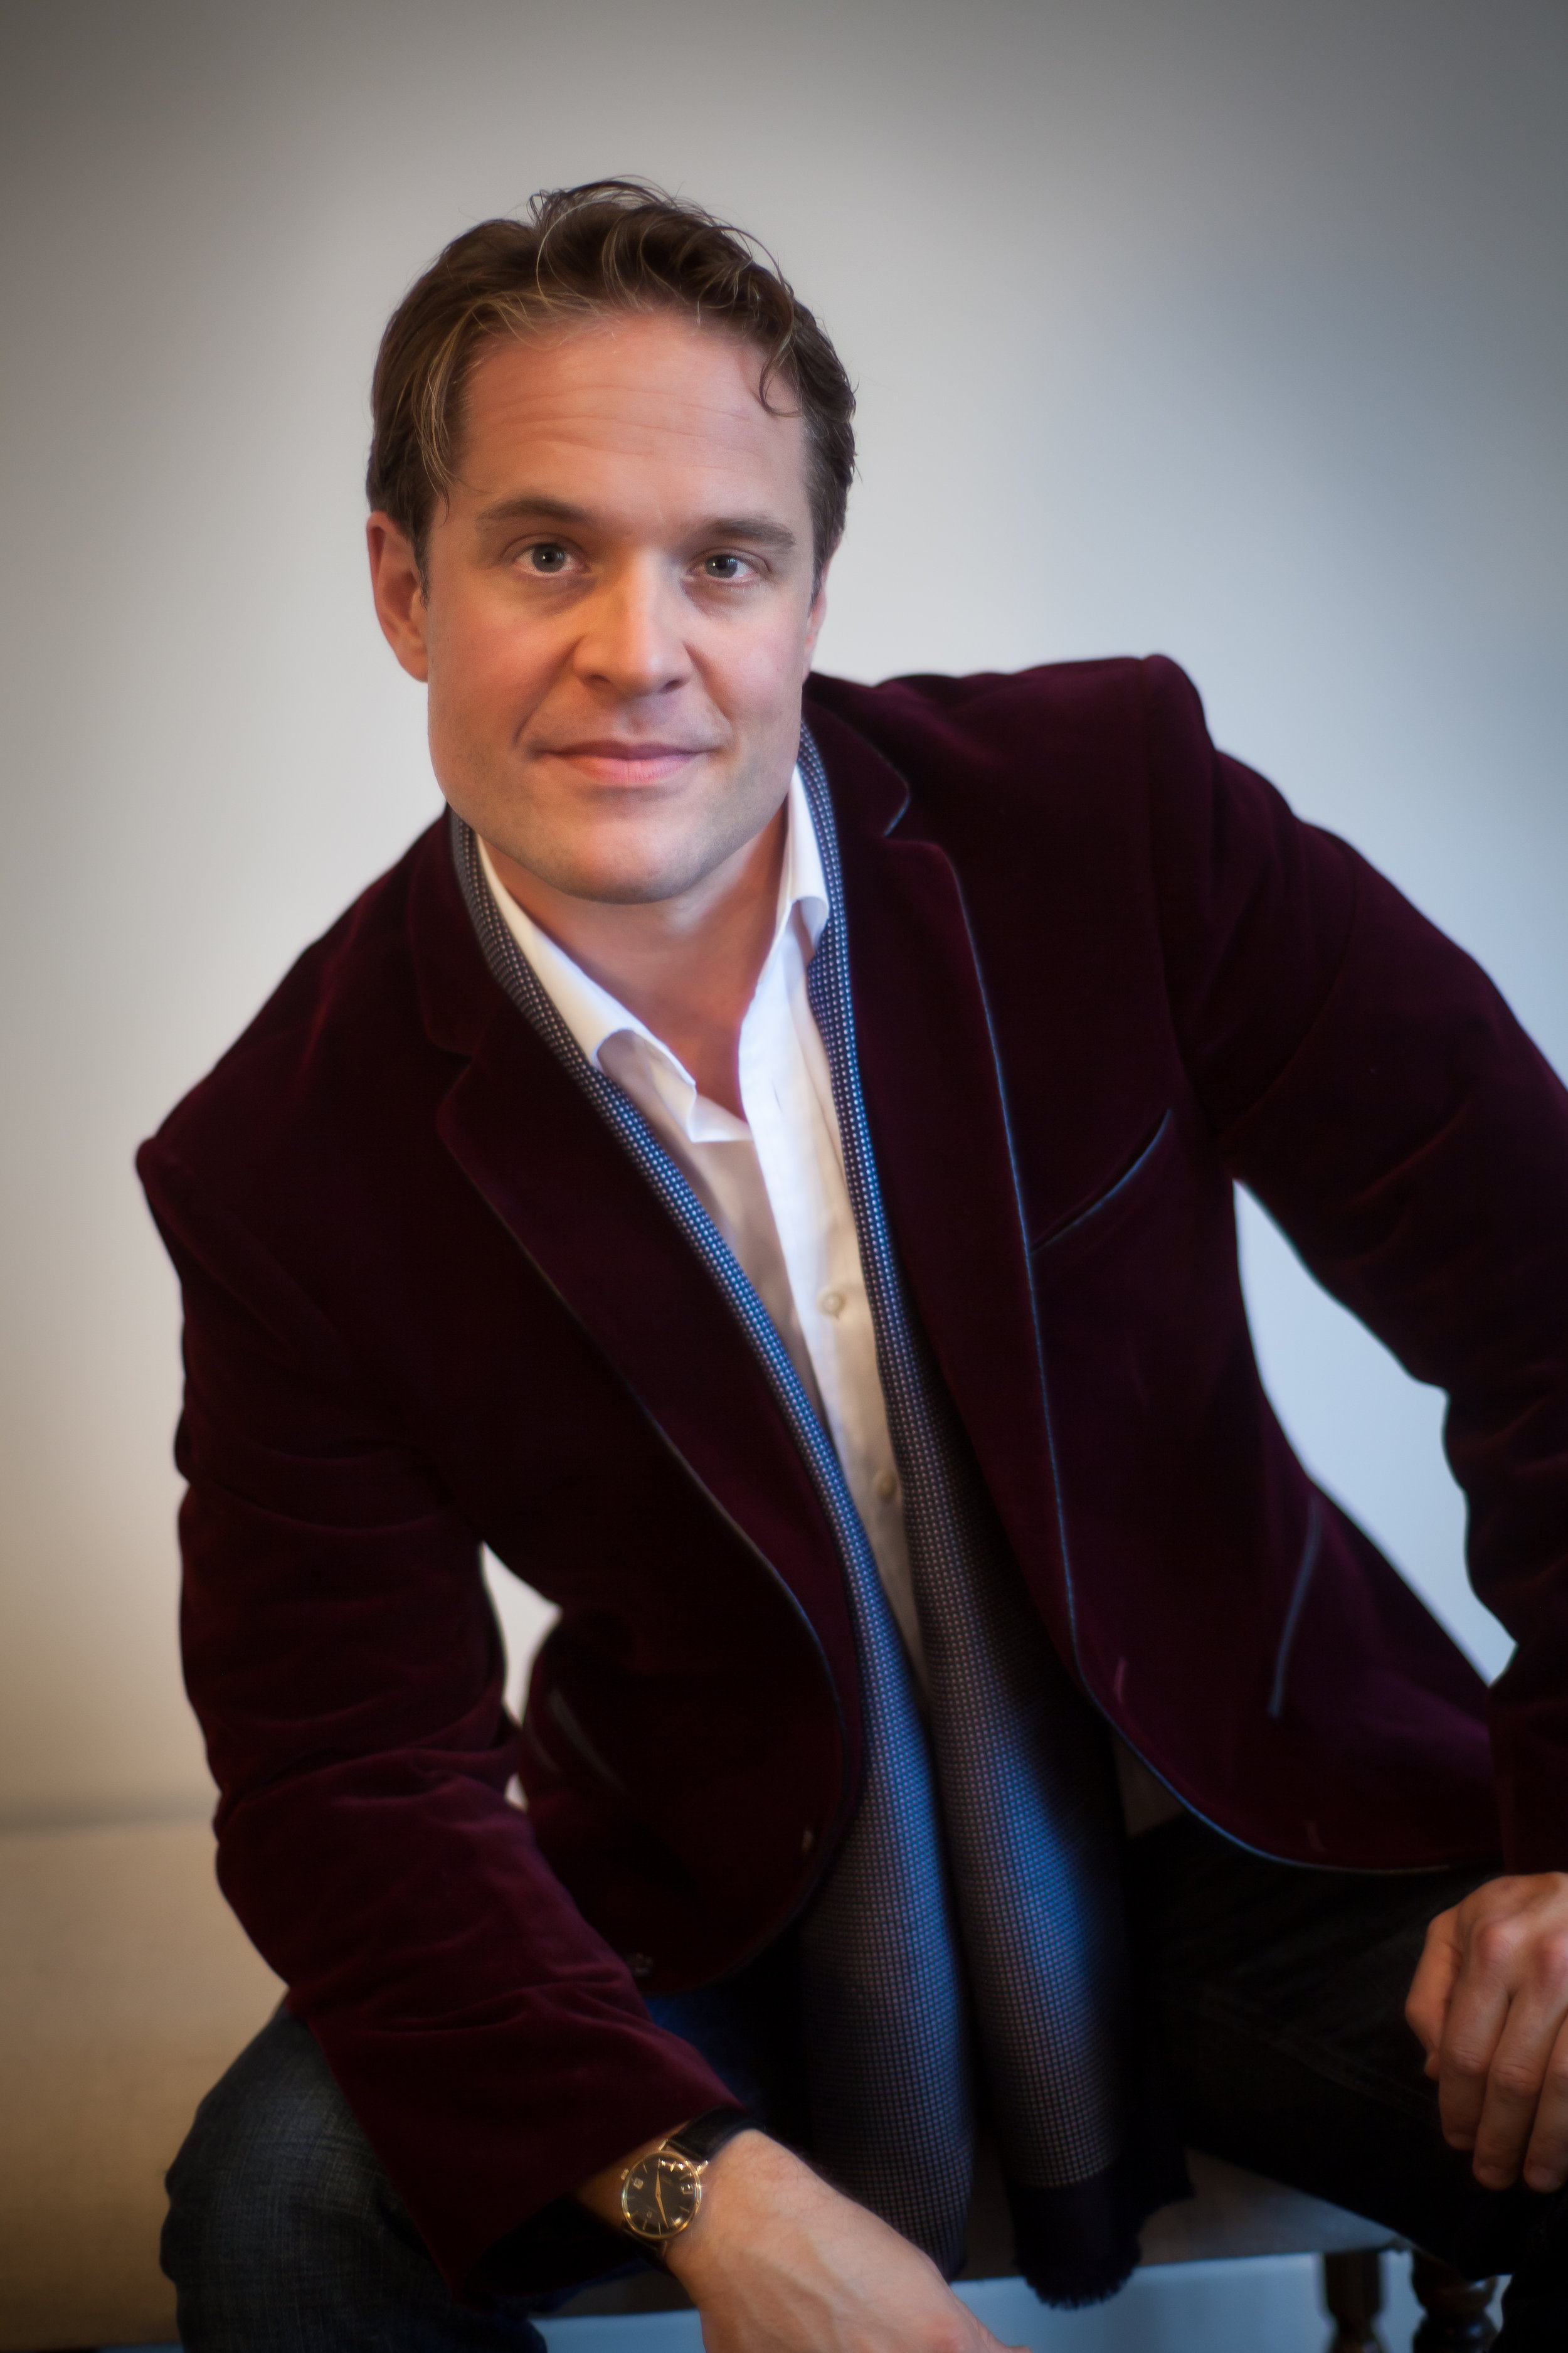 THURSDAY 29TH MARCH6.30 - 7.30PM - A new opera by Geoff Page based on John Milton's Paradise Lost, sung by countertenor Lawrence Zazzo accompanied on piano by the composer. Tickets £7.50www.lawrencezazzo.com